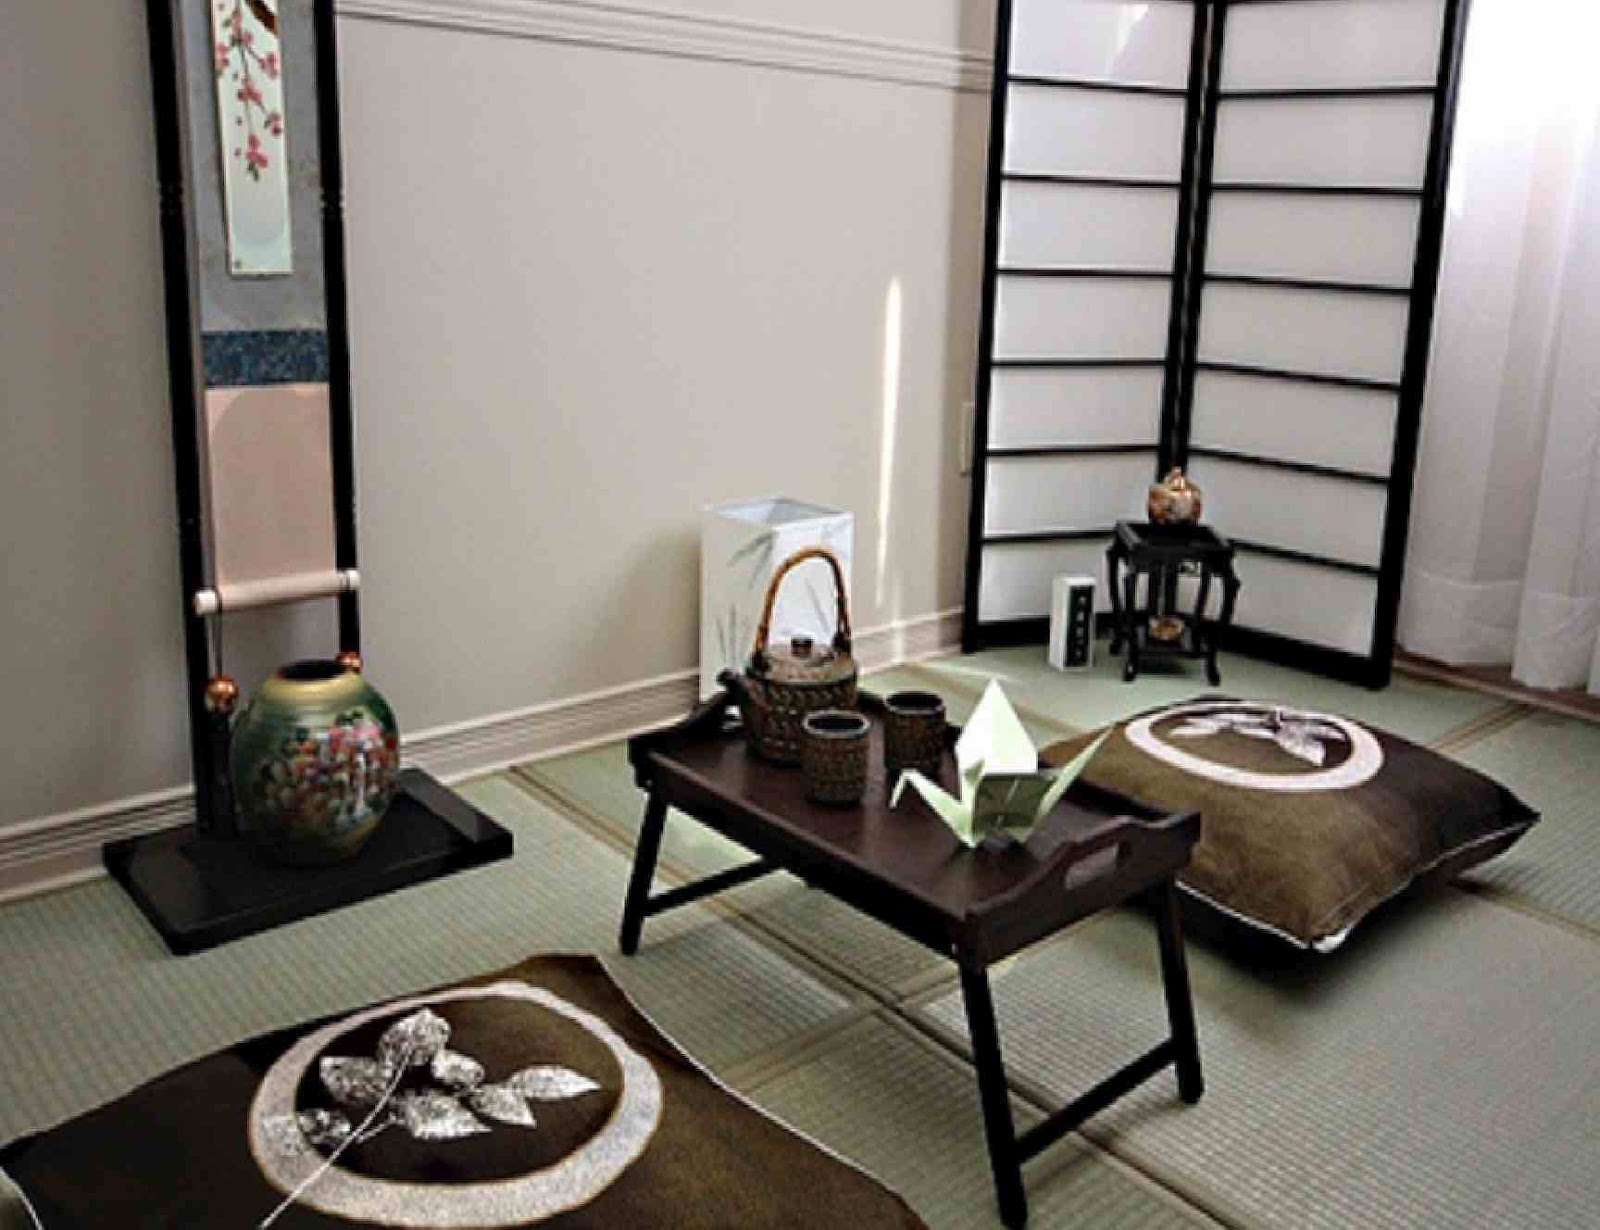 Japanese interior design interior home design for Living room japanese style